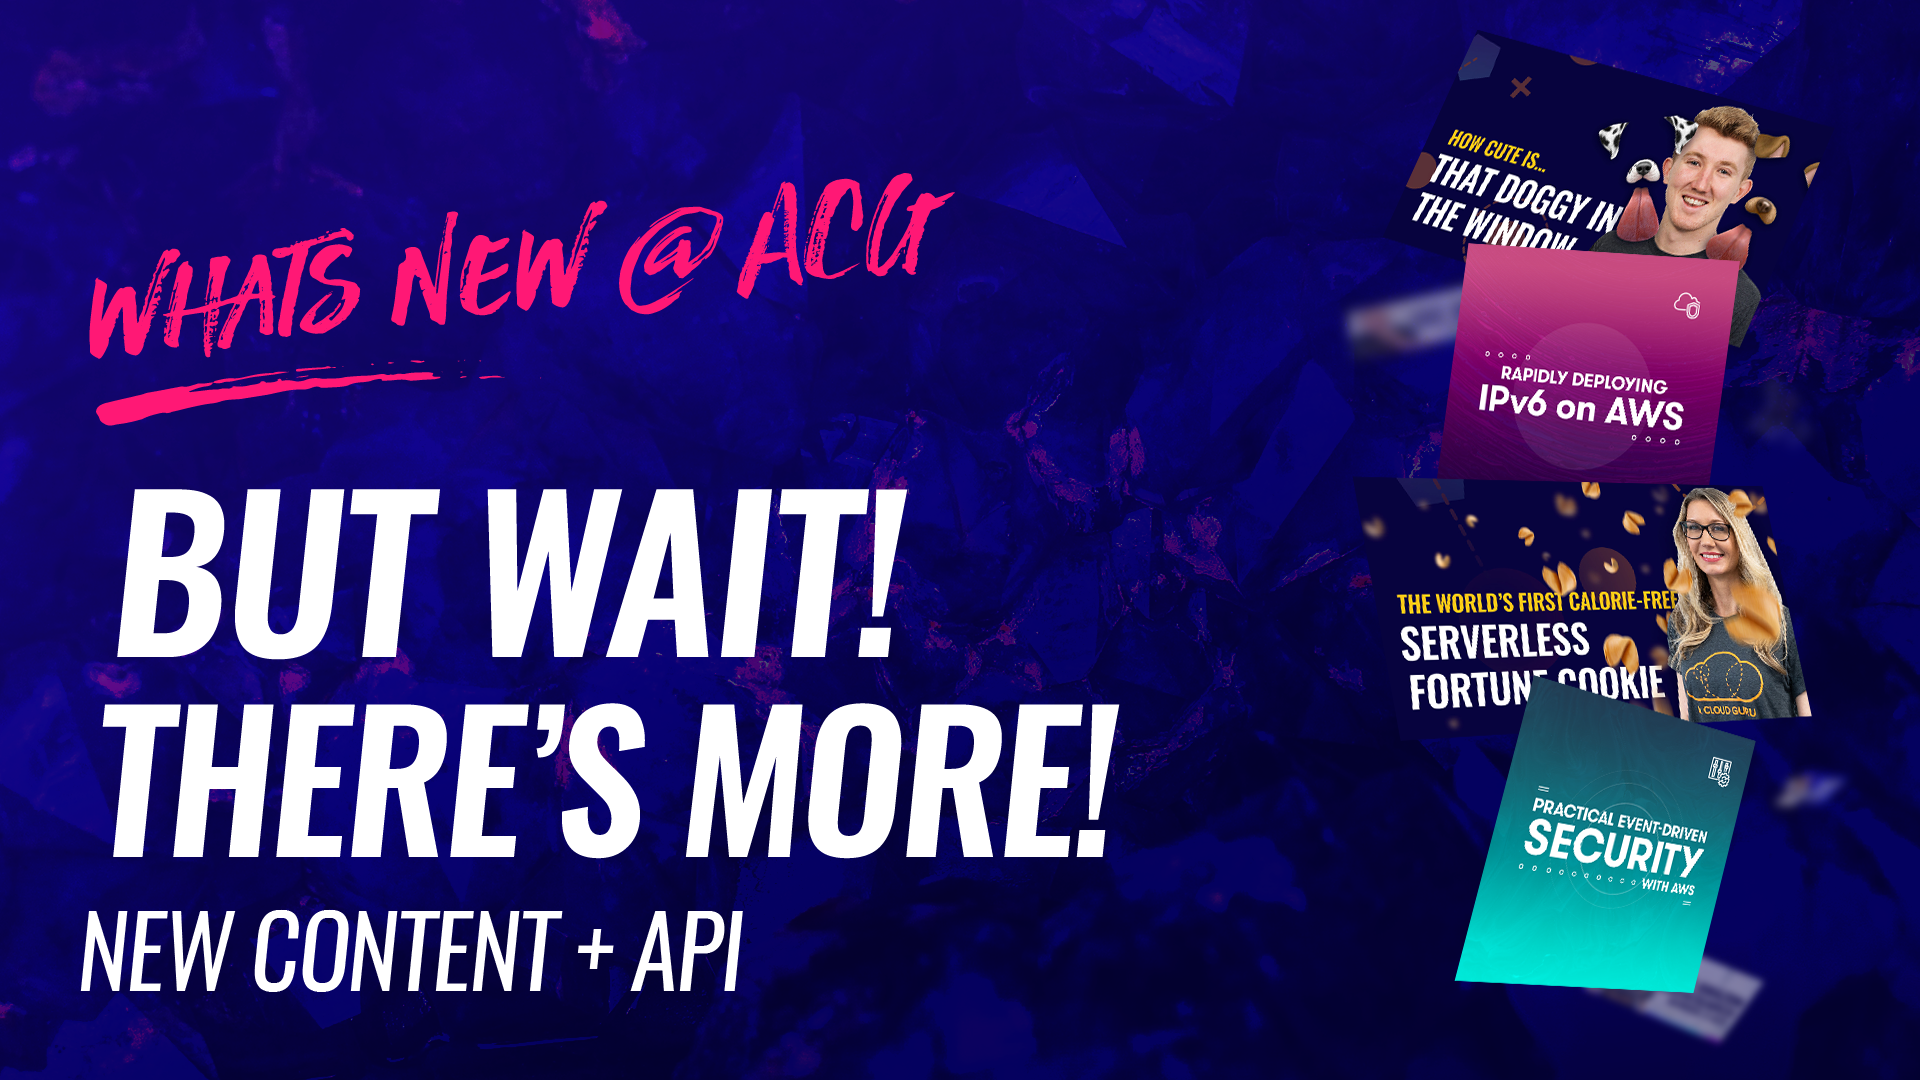 whats new @ ACG - But wait, there's more, new content plus api